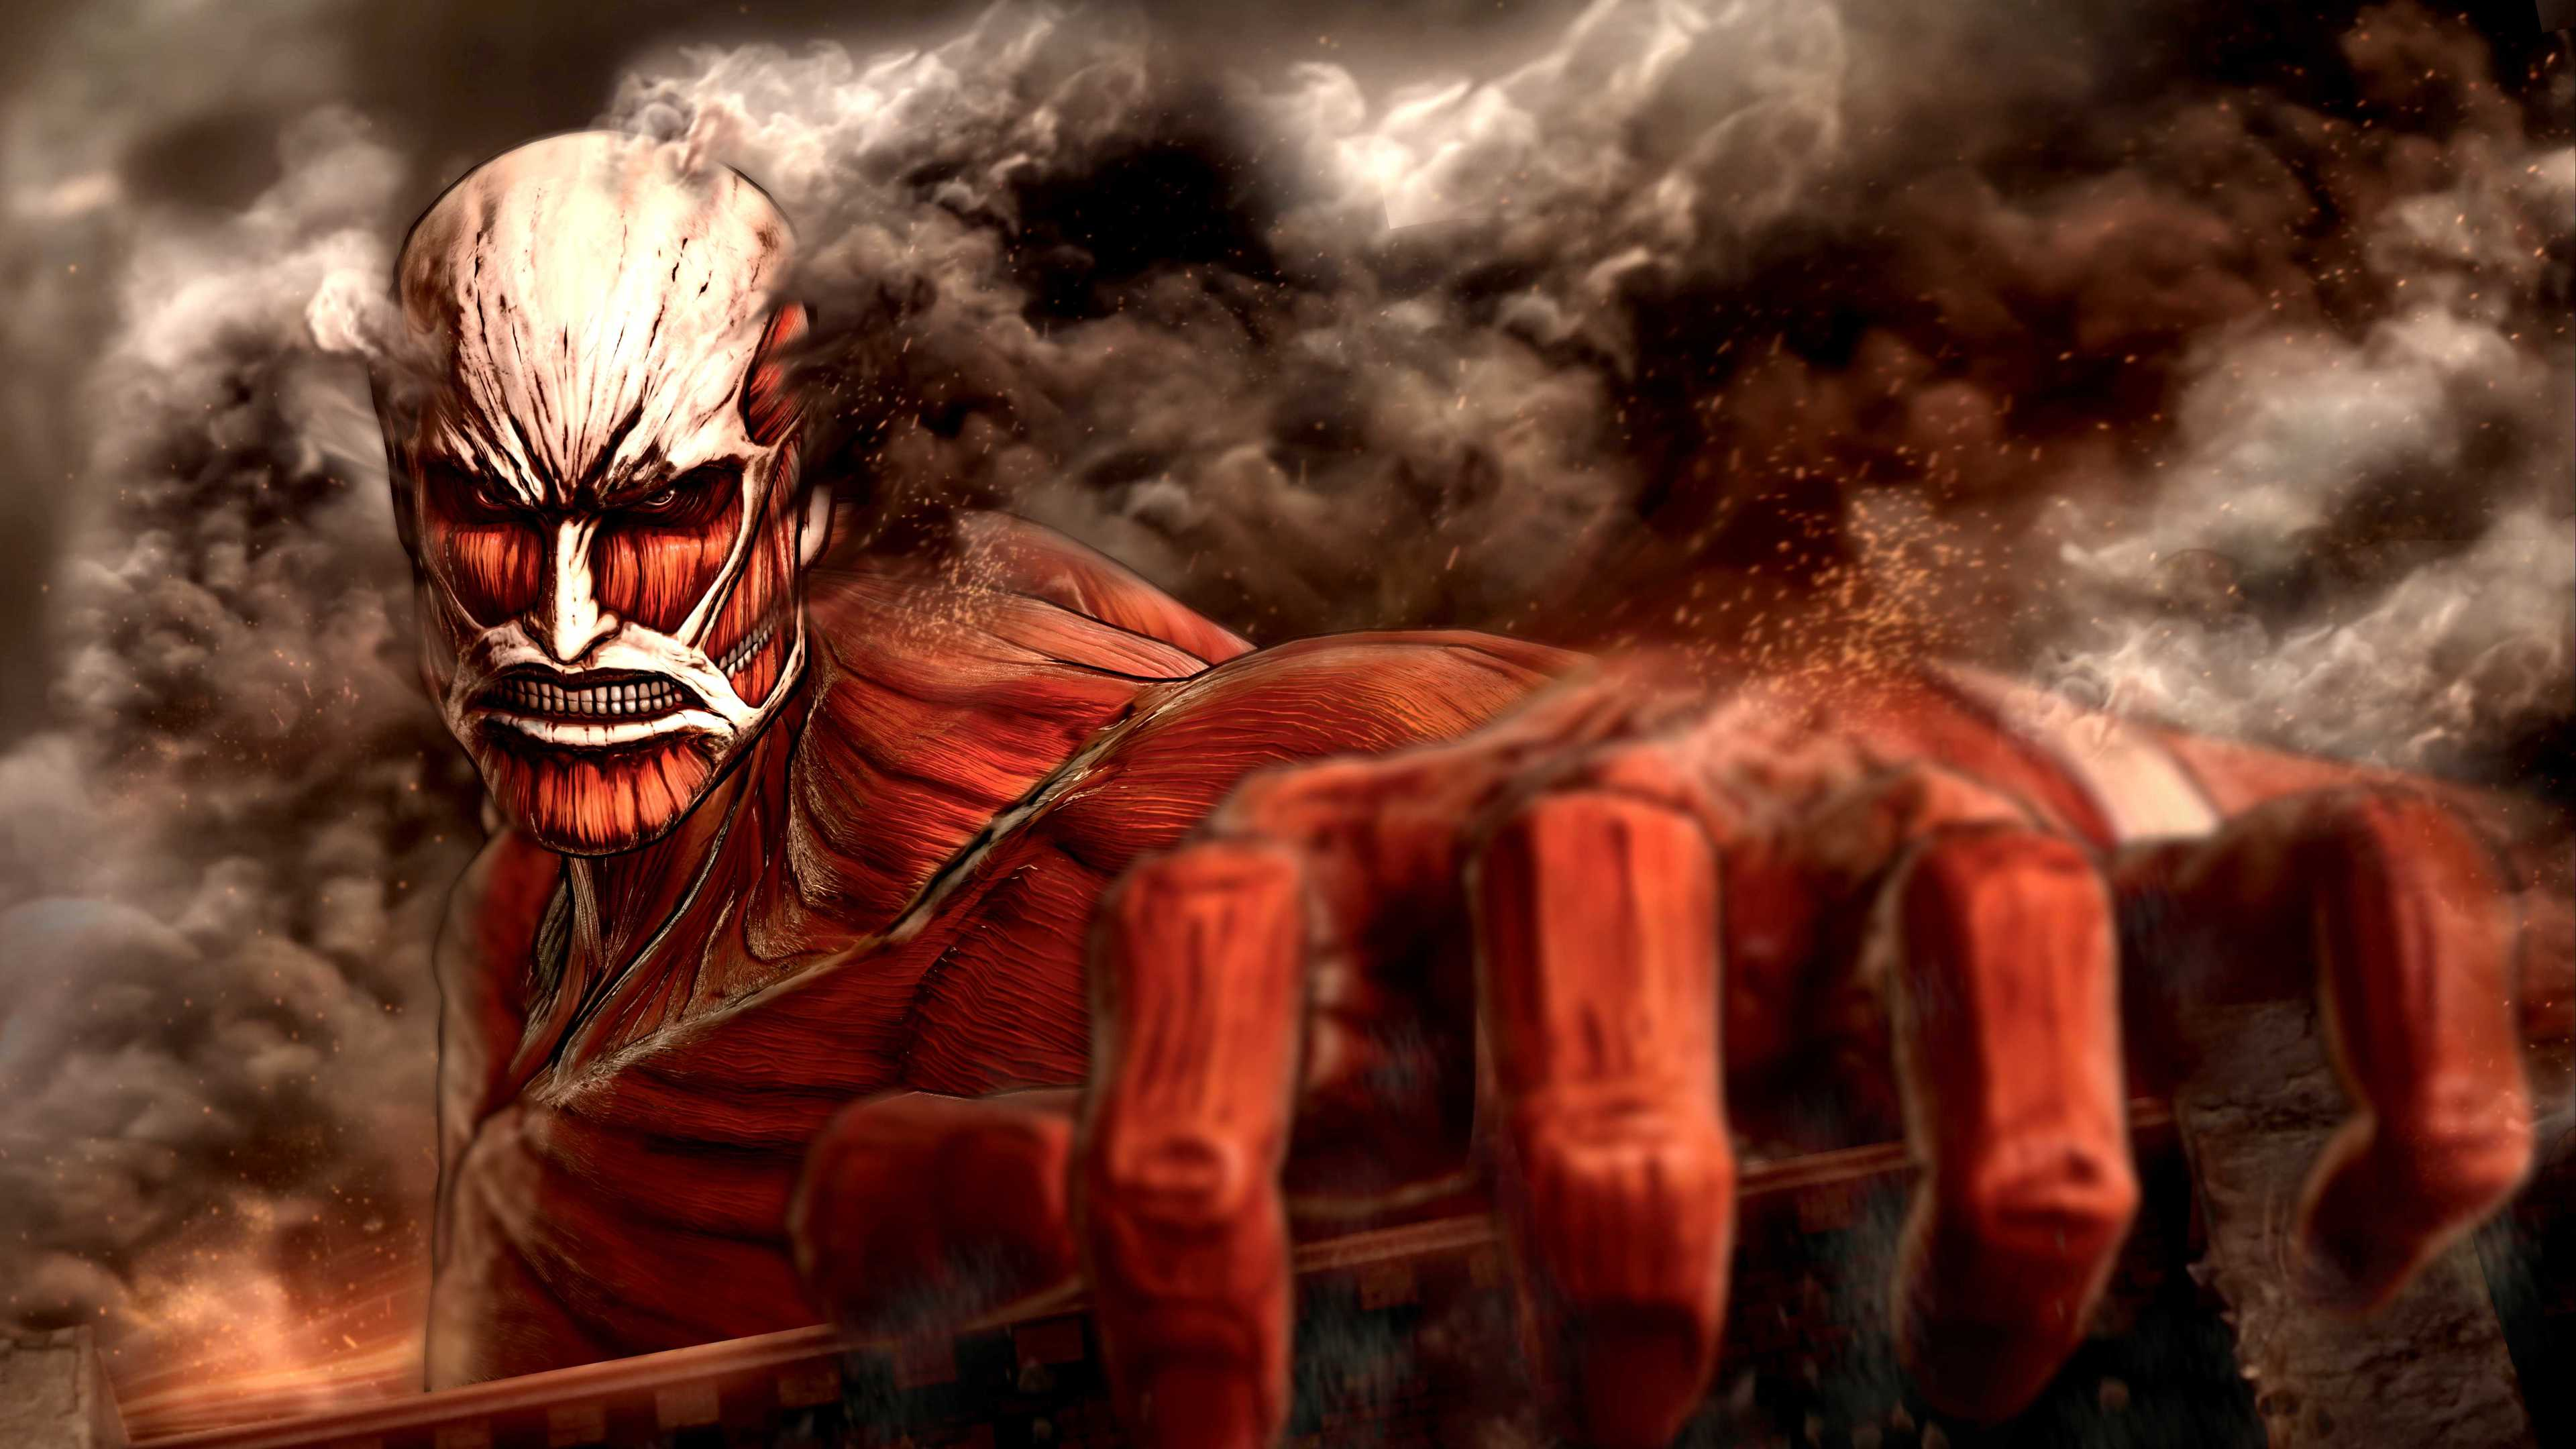 Wallpaper 4k Attack On Titan 4k Wallpapers Anime Wallpapers